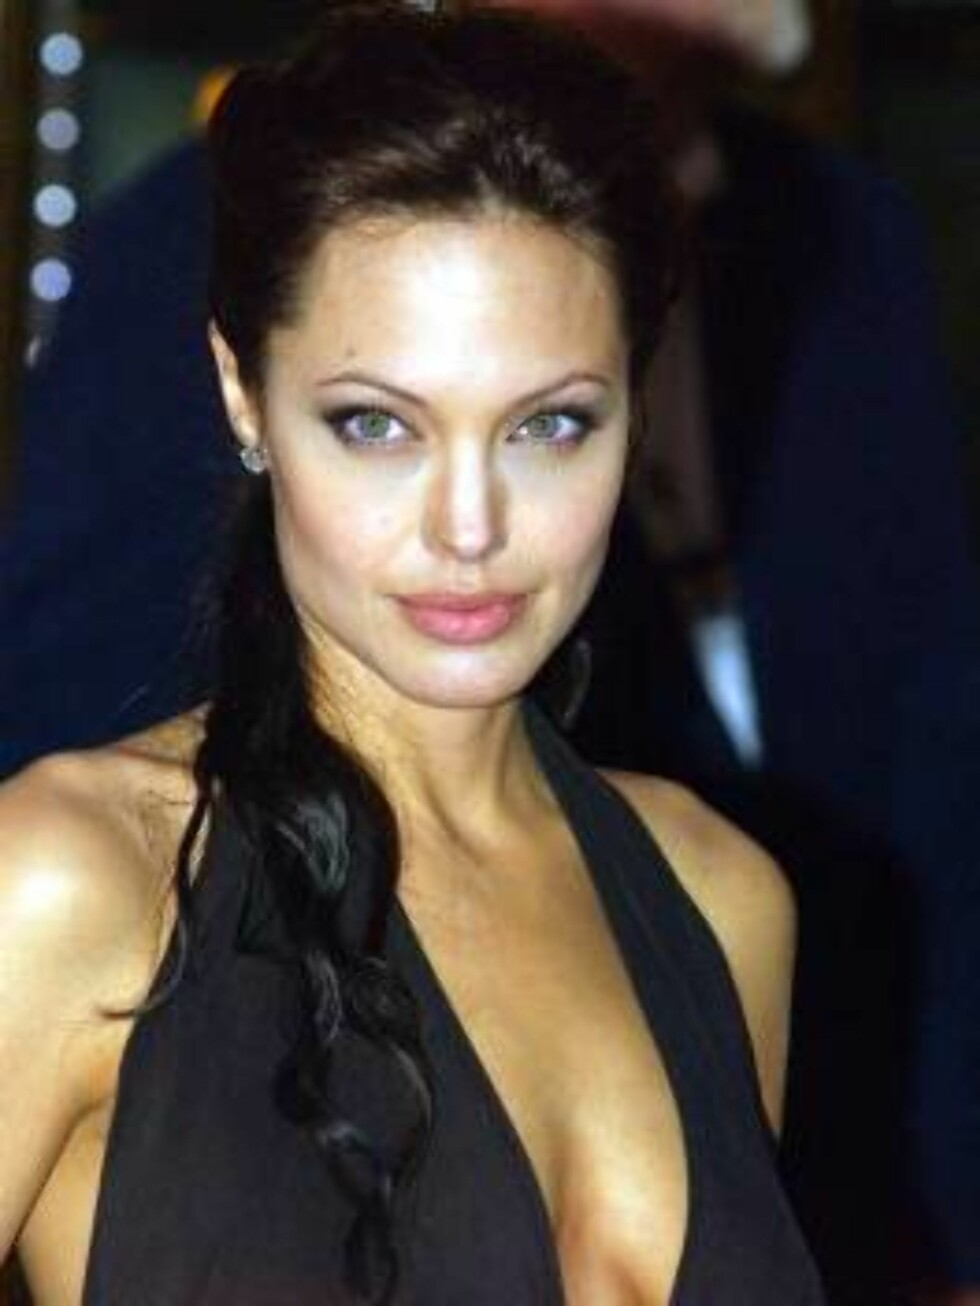 <strong>Angelina Jolie, the star of Tomb Raider:</strong> The Cradle of Life, arrives at the British Premiere of the movie, at a theatre in London's Leicester Square, Tuesday Aug. 19 2003,(AP Photo/Anna Branthwaite) Foto: AP/Scanpix